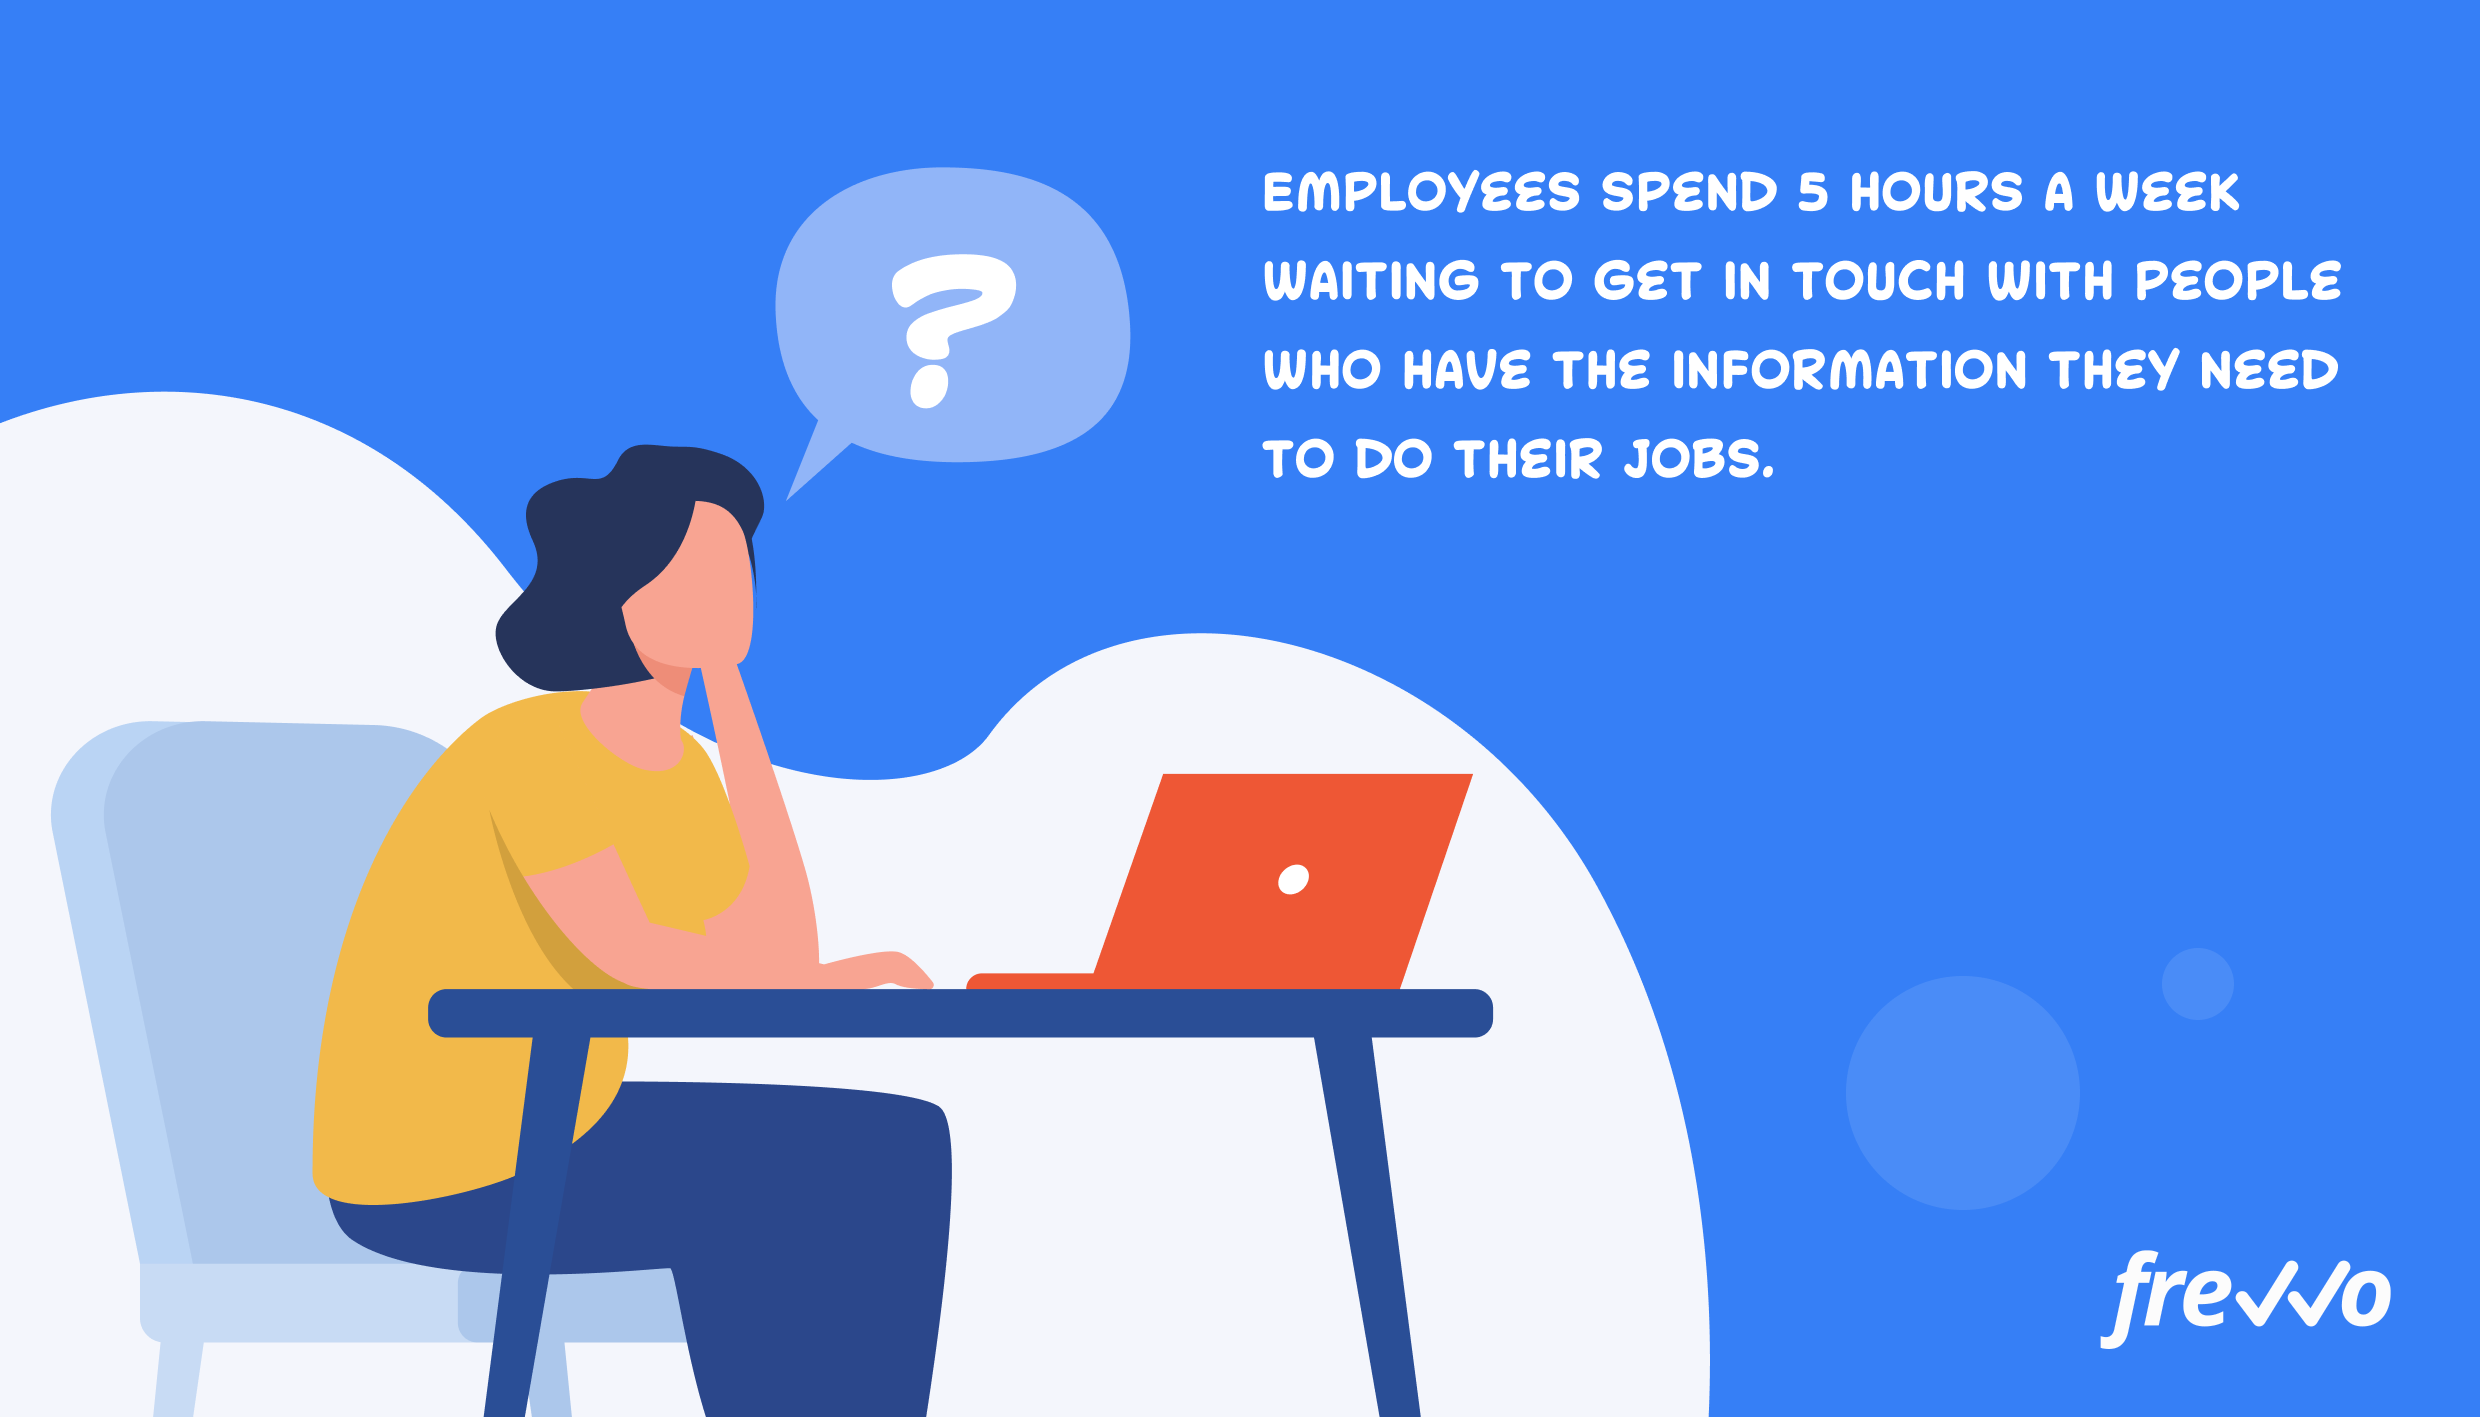 Employees spend 5 hours a week waiting for information they need